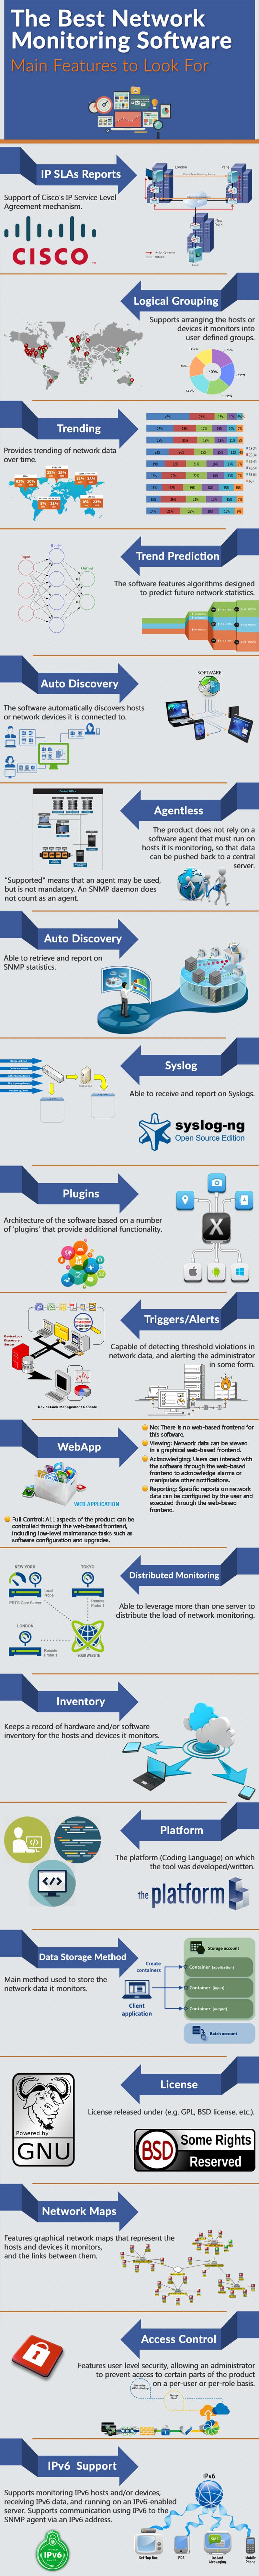 Top Network Monitoring Software